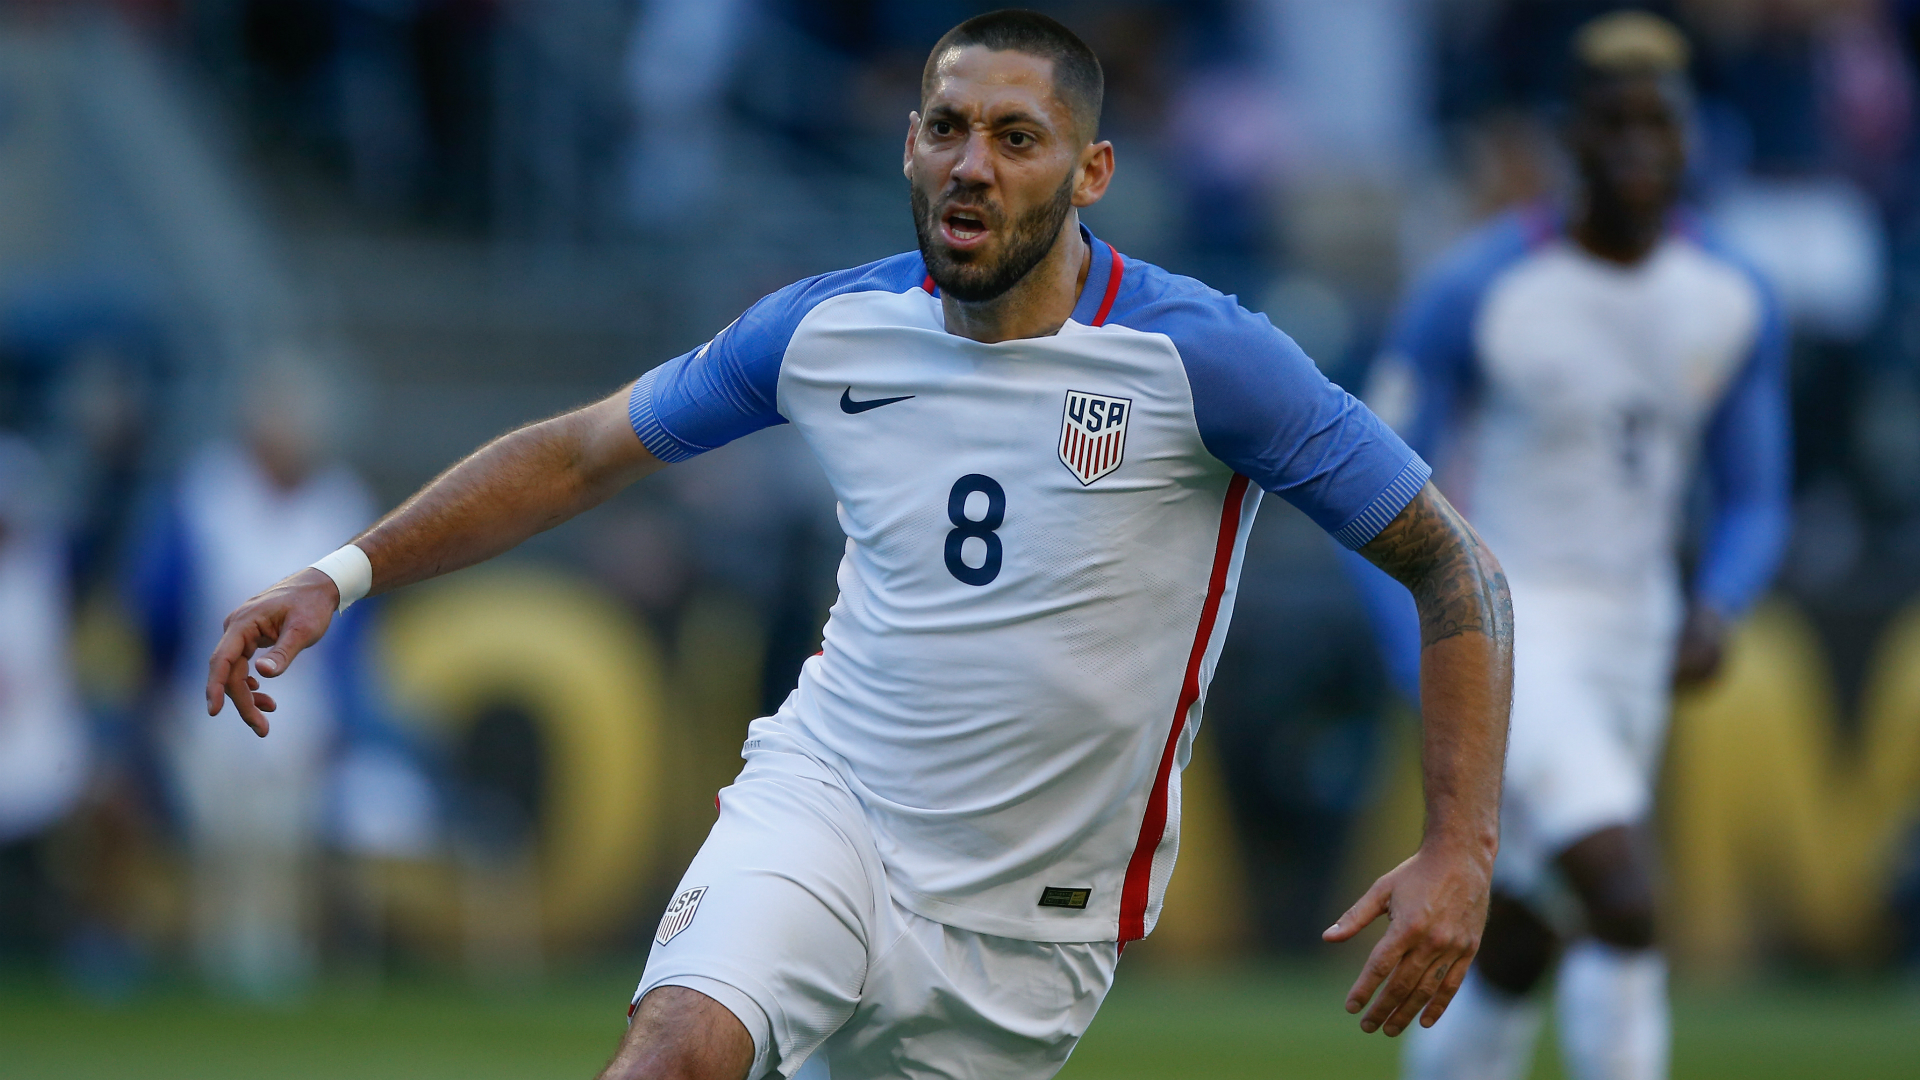 Clint Dempsey returns to U.S. soccer for crucial World Cup qualifiers